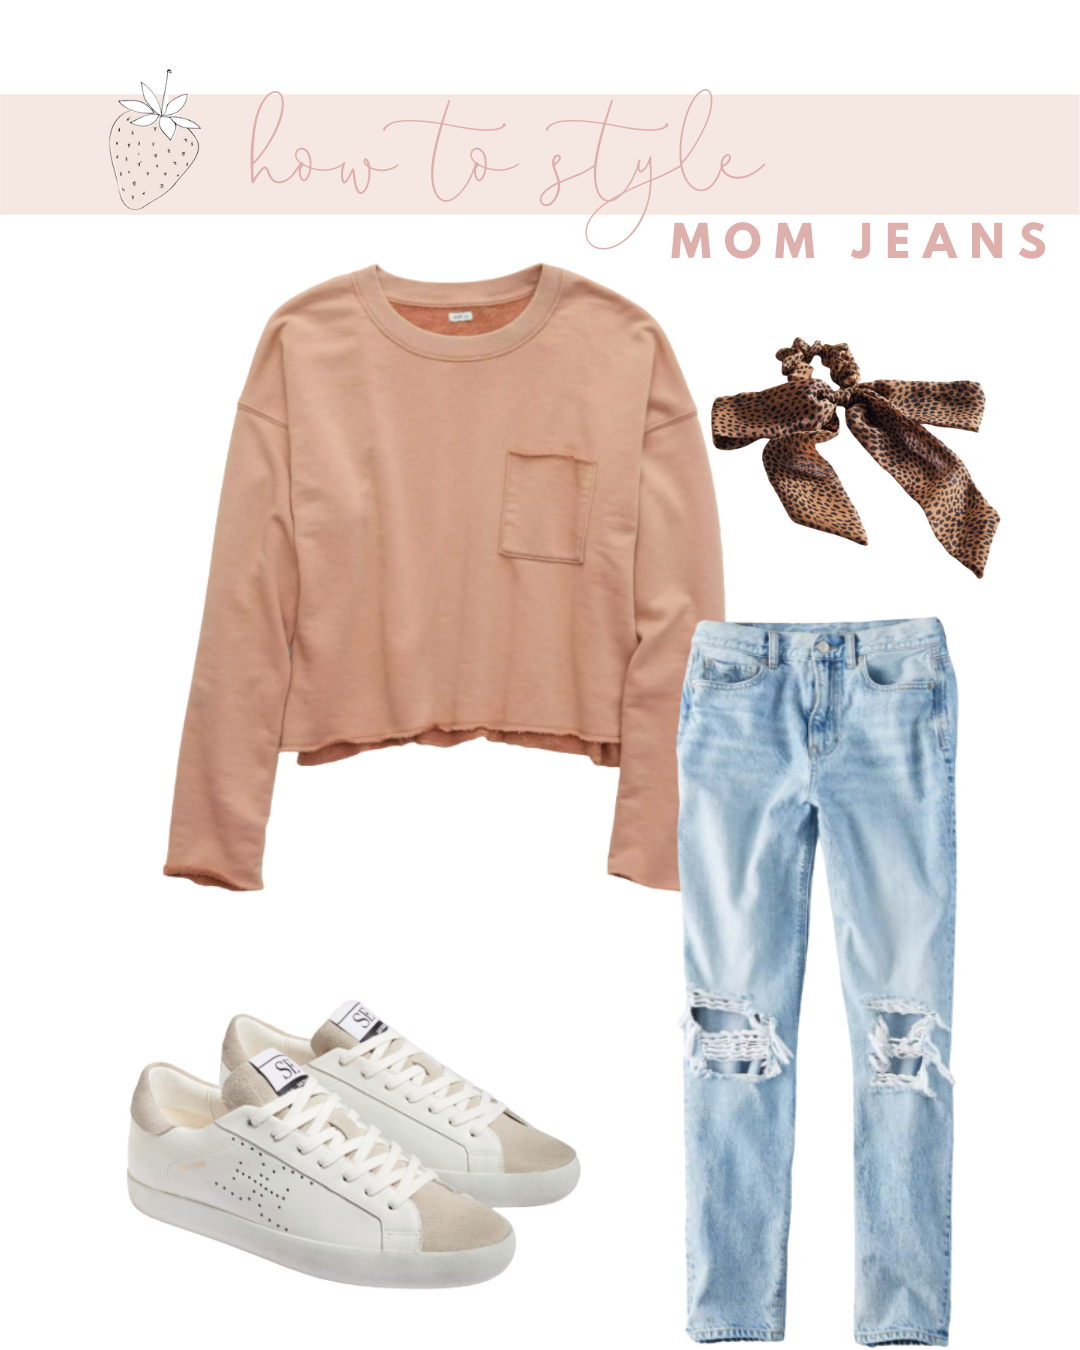 Mom Jeans with a Cropped Sweatshirt